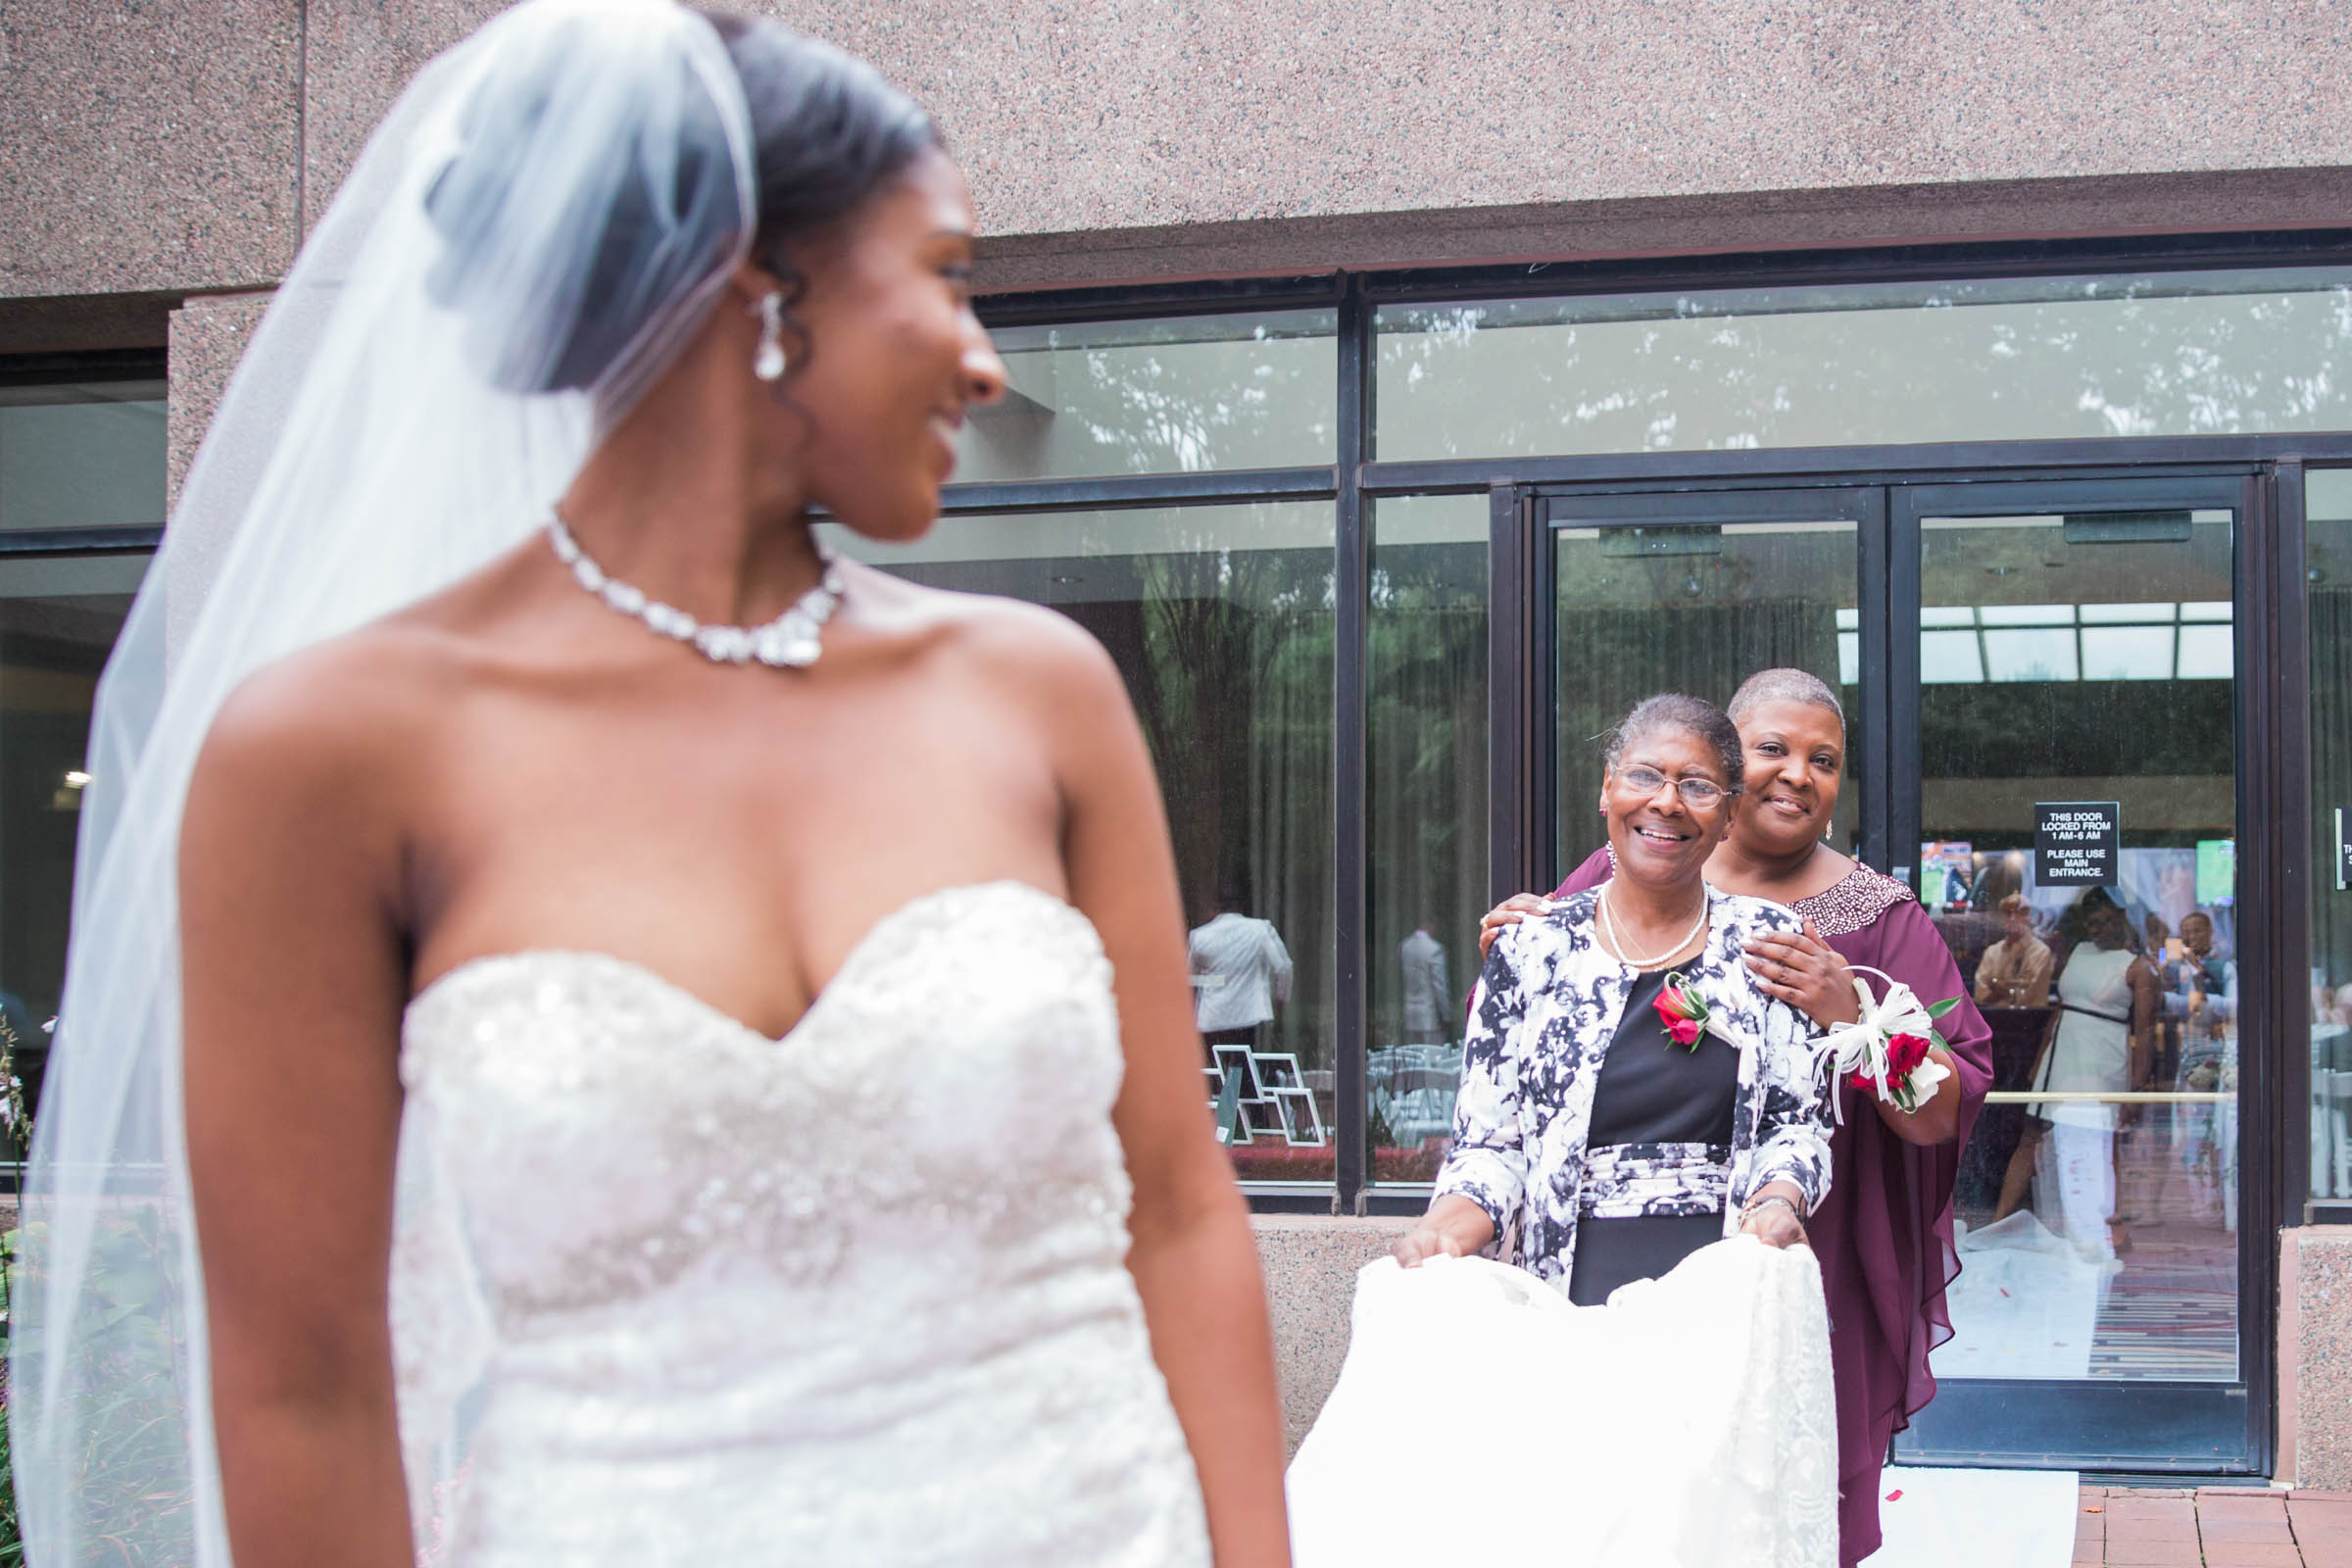 Black Bride Dream Wedding at  Hyatt Regency Fairfax Virginia Husband and Wife Wedding Photographers Megapixels Media Photography (61 of 104).jpg